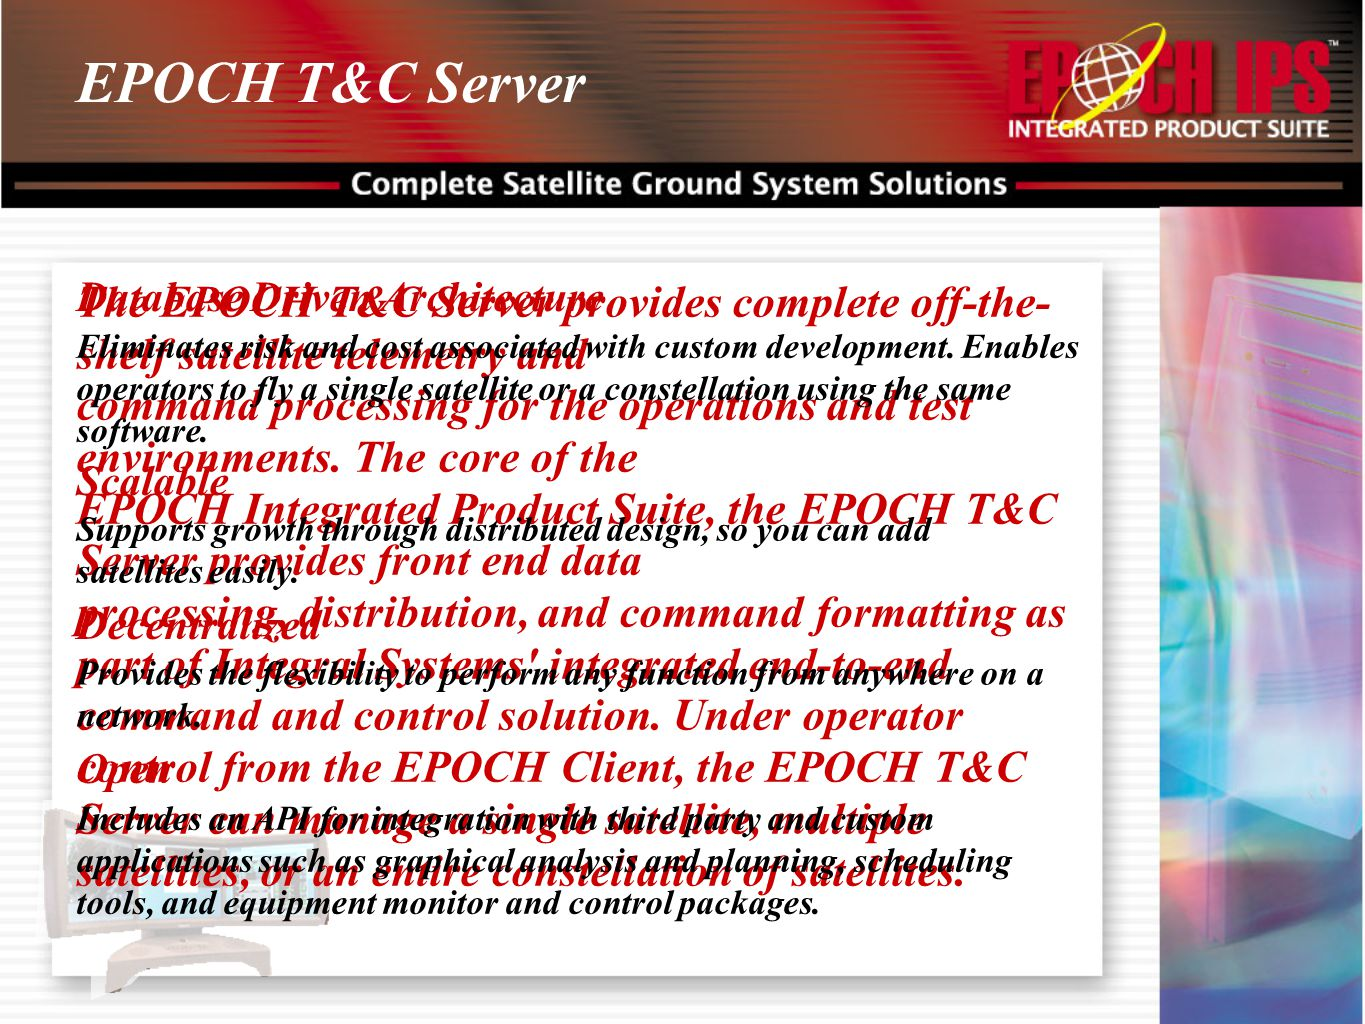 EPOCH T&C Server The EPOCH T&C Server provides complete off-the- shelf satellite telemetry and command processing for the operations and test environm